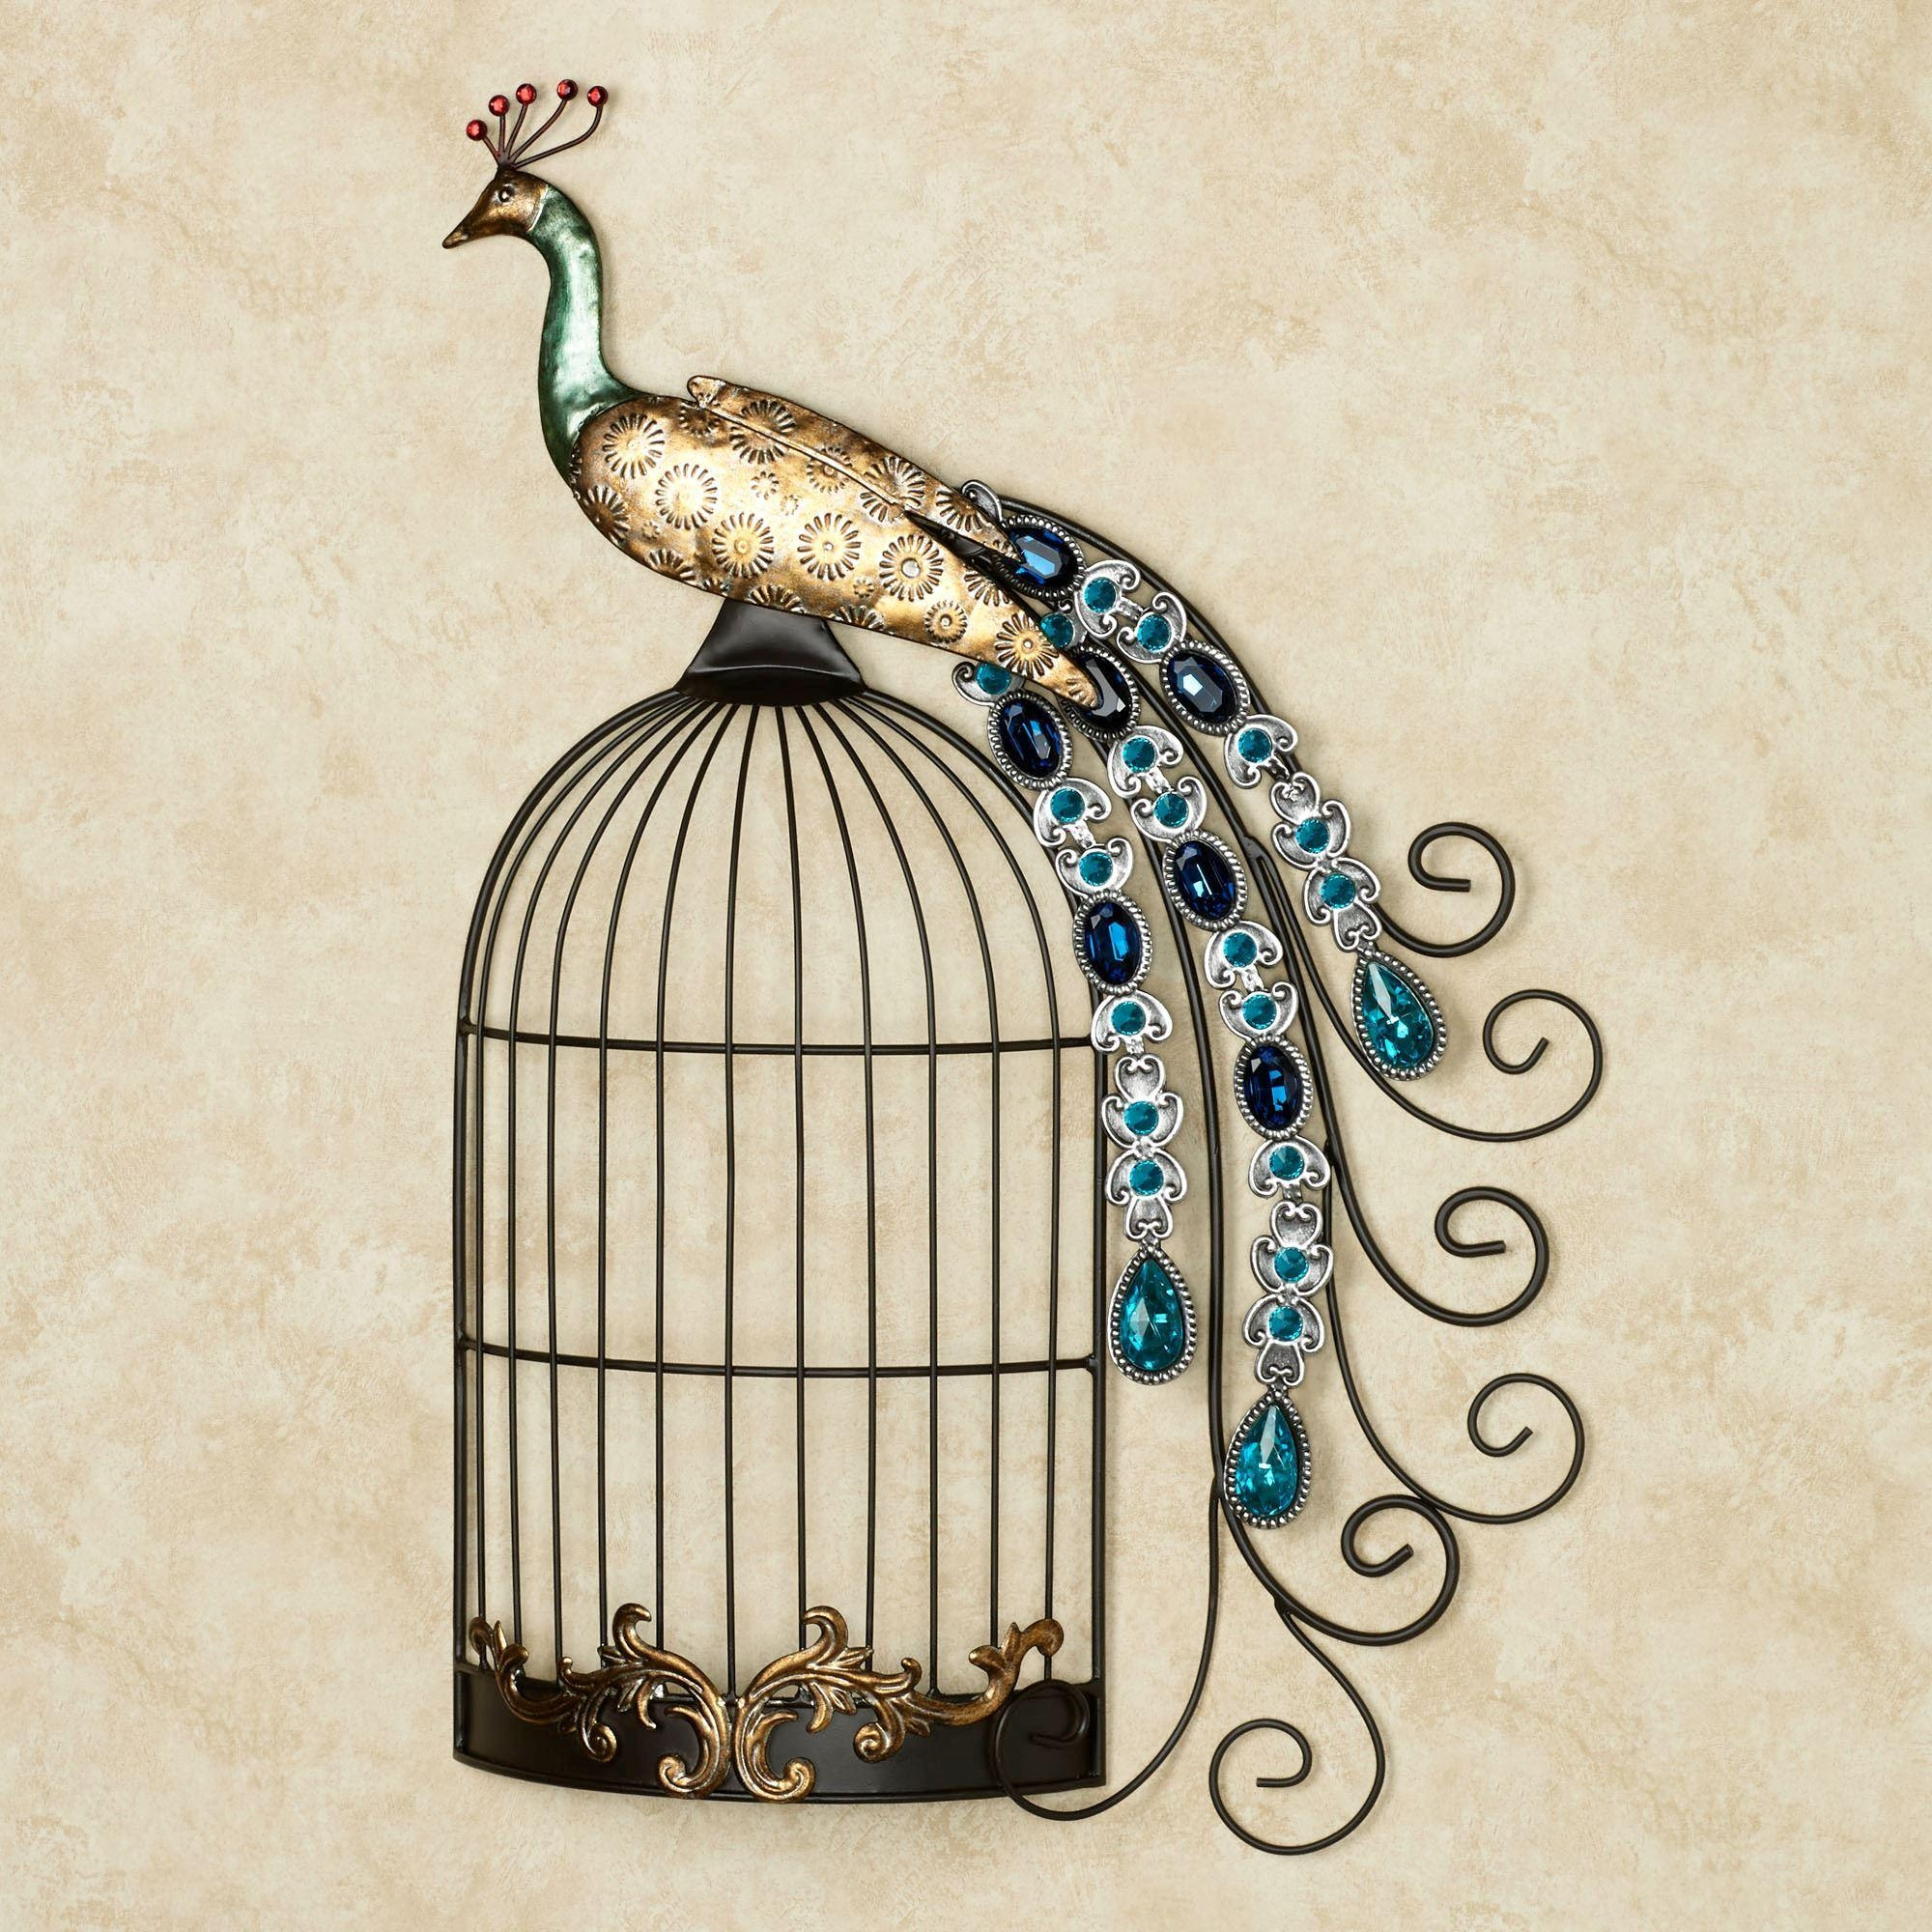 Peacock Jewels On Cage Metal Wall Art With Regard To Peacock Metal Wall Art (View 6 of 20)